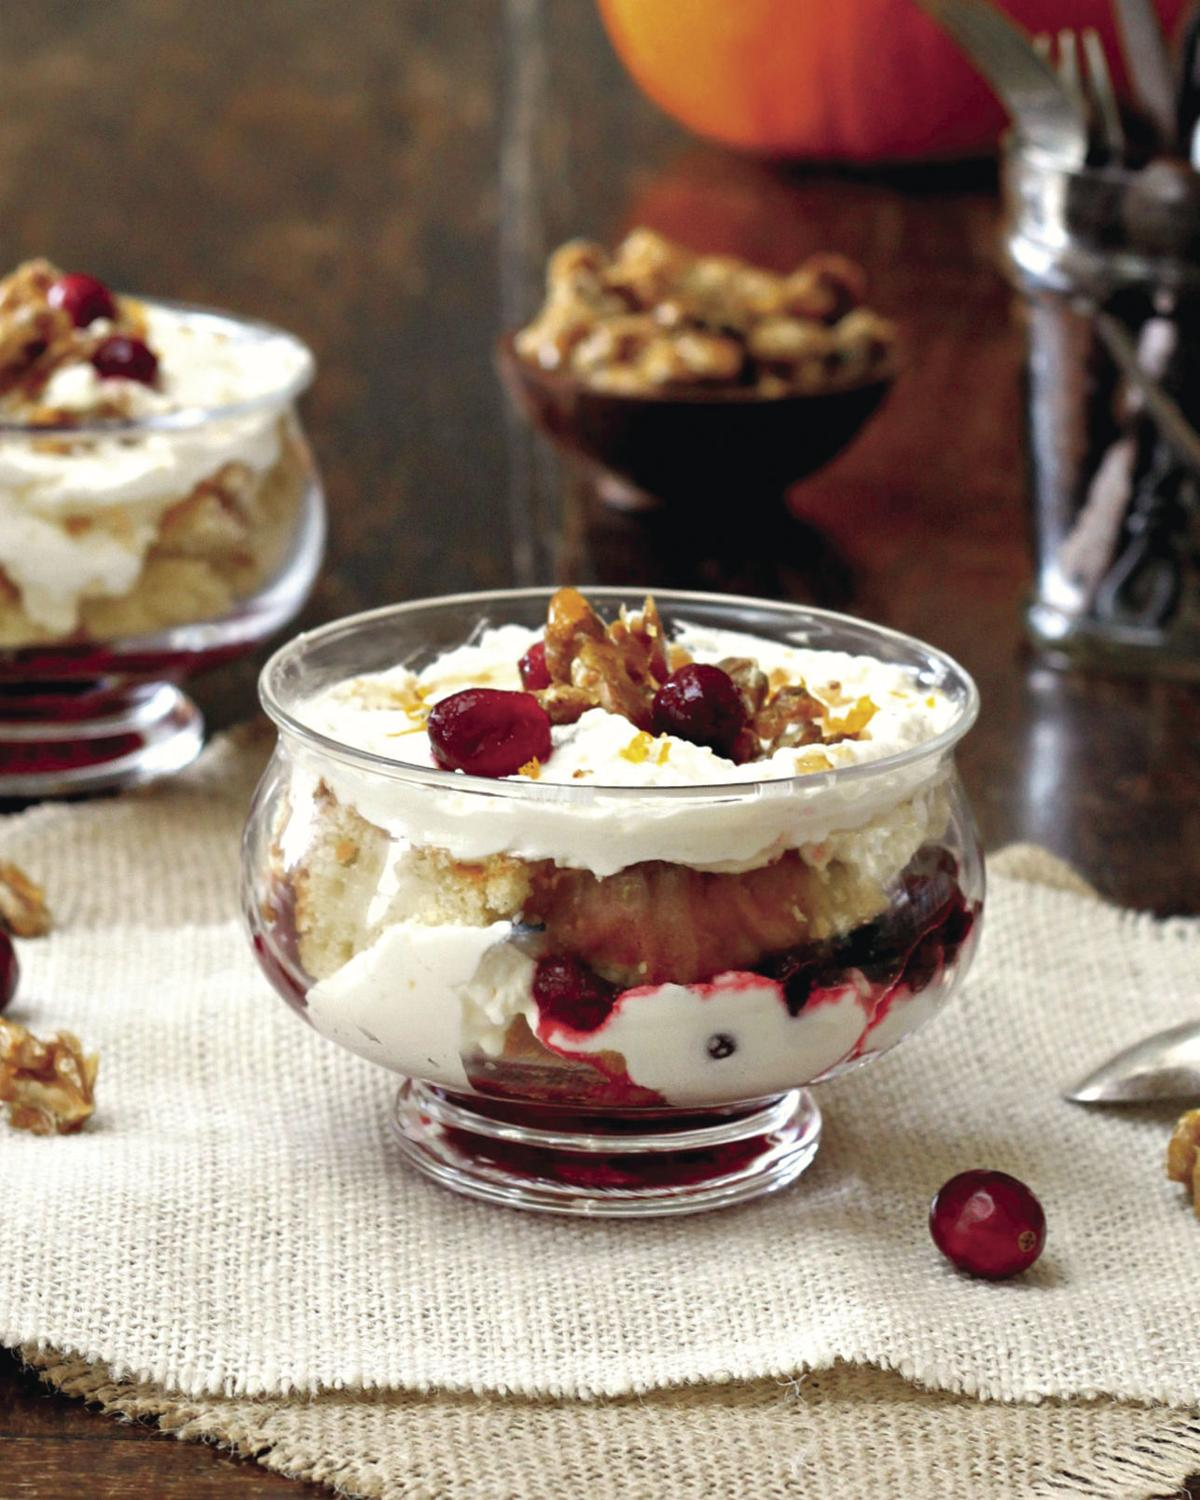 Cranberry Orange Trifle With Candied Walnuts